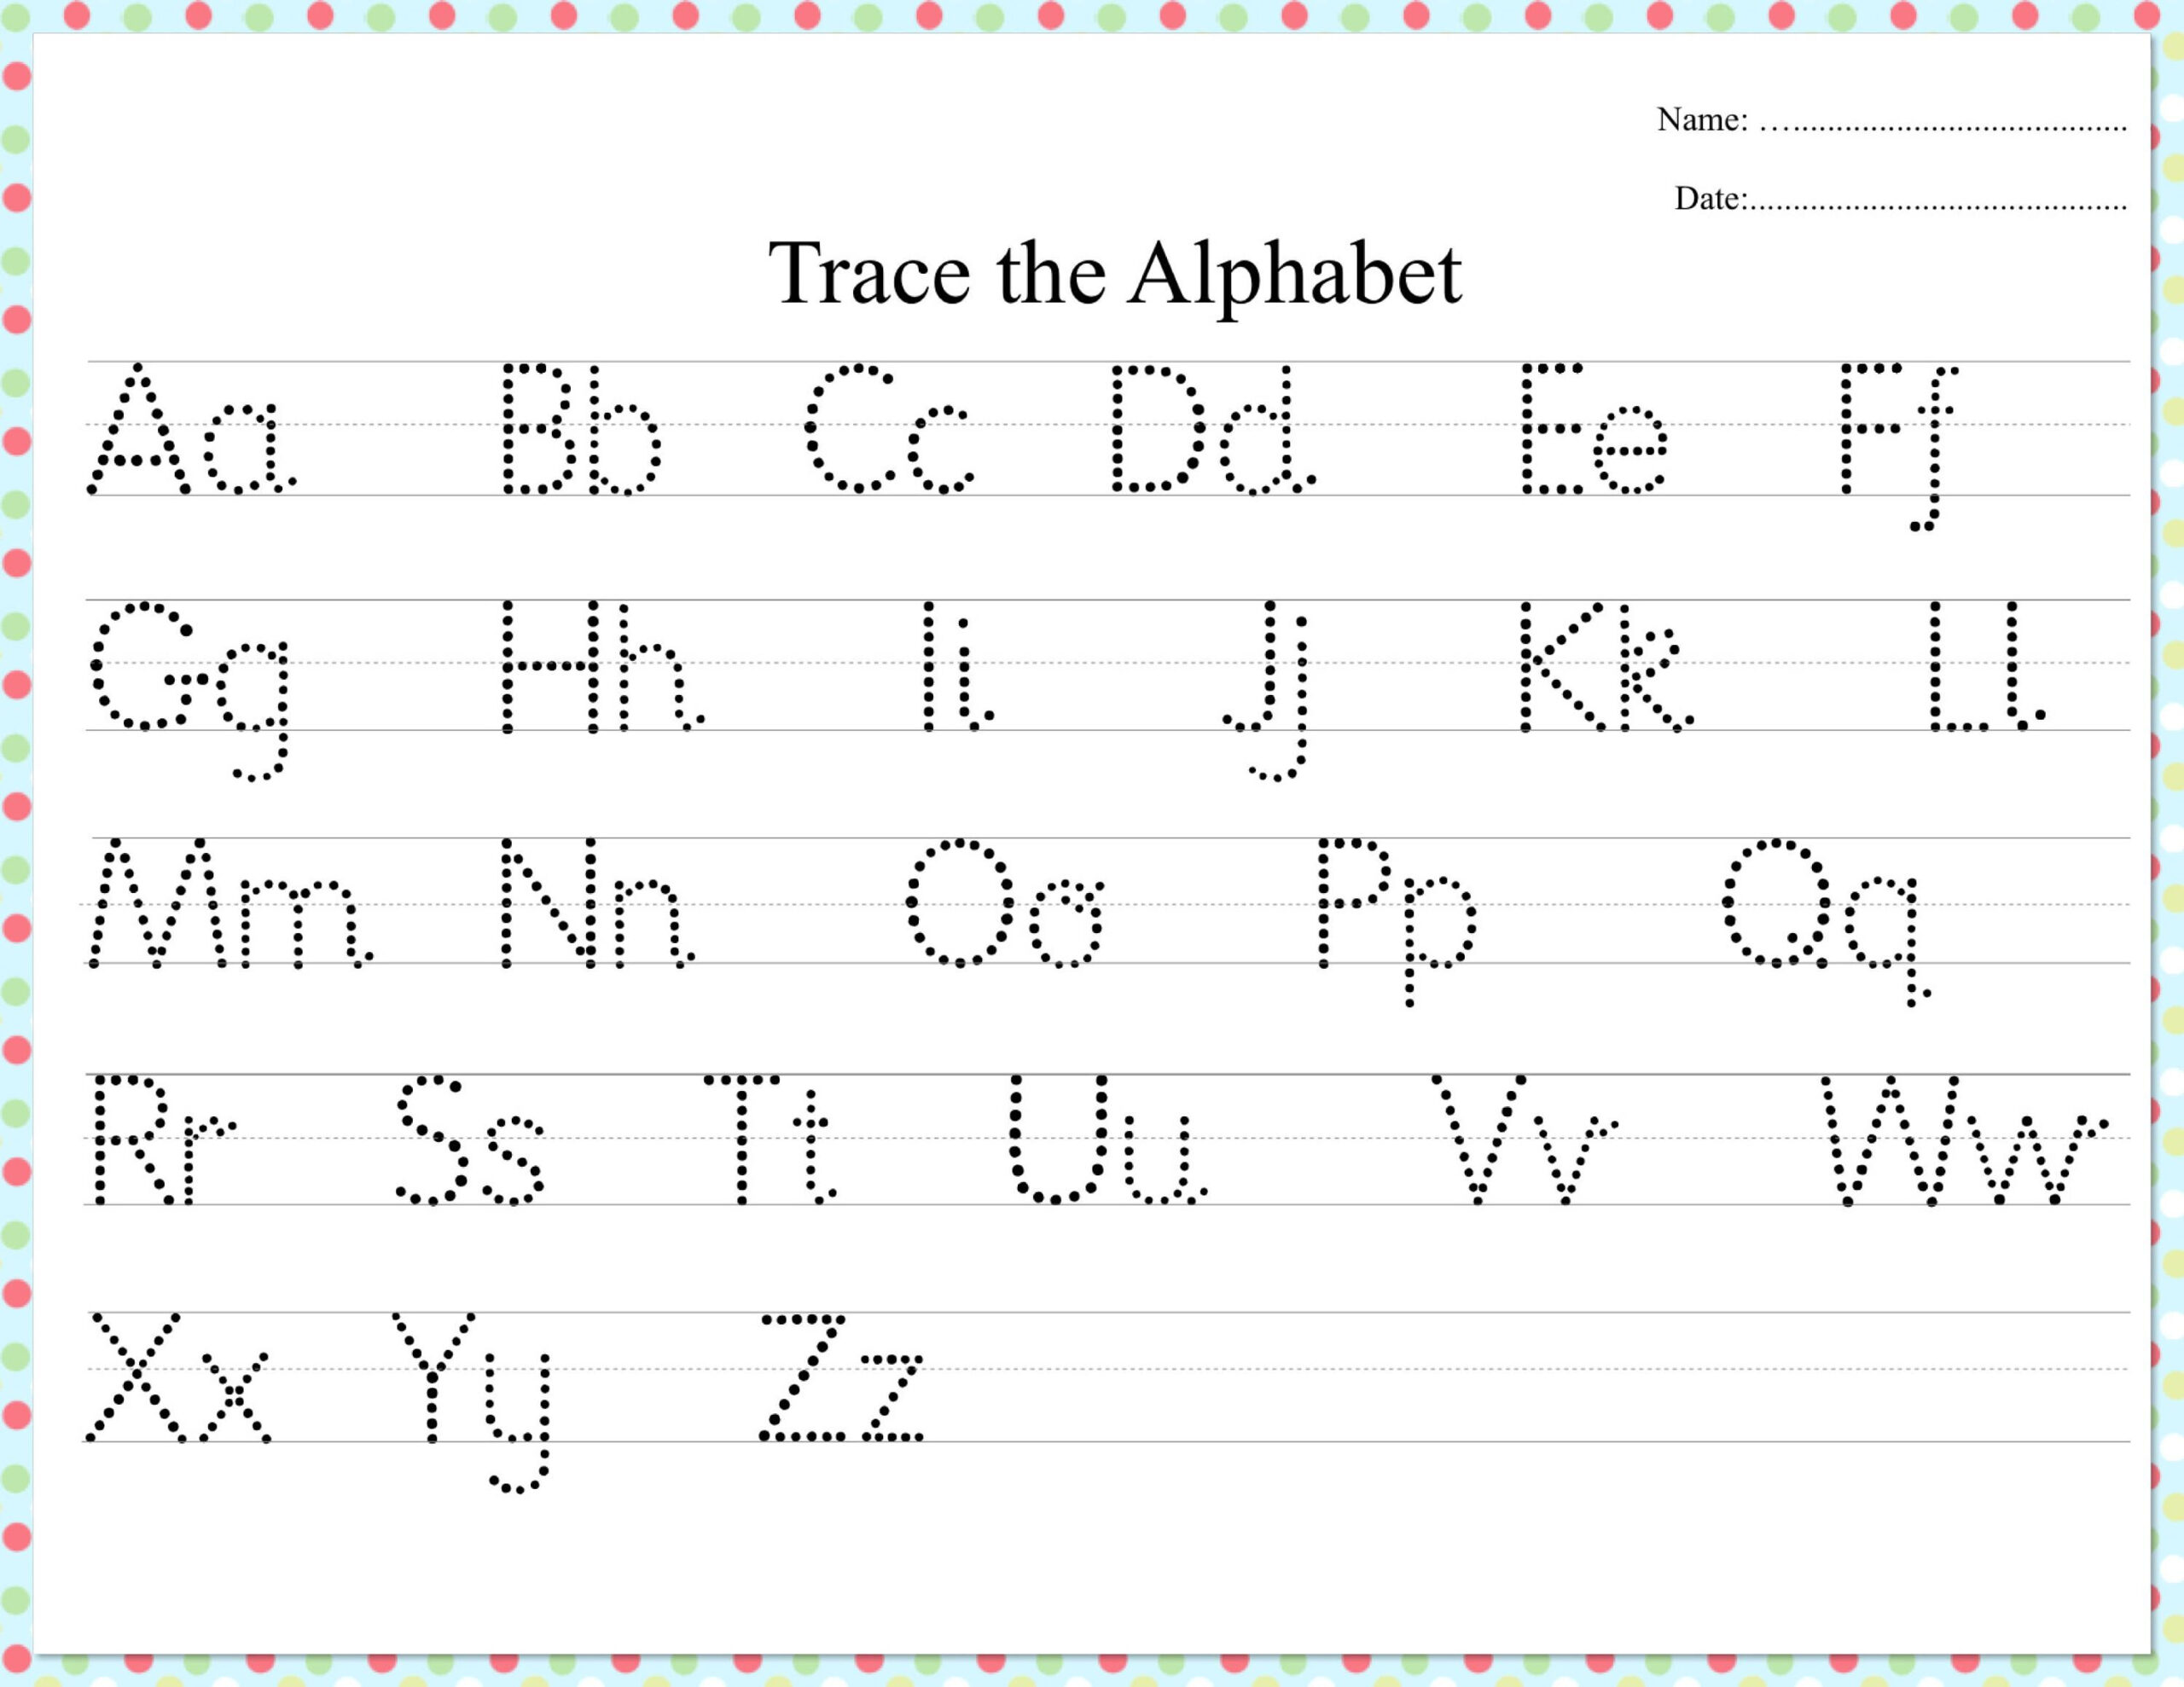 Dotted Alphabet Trace Practice Worksheet | Etsy In 2020